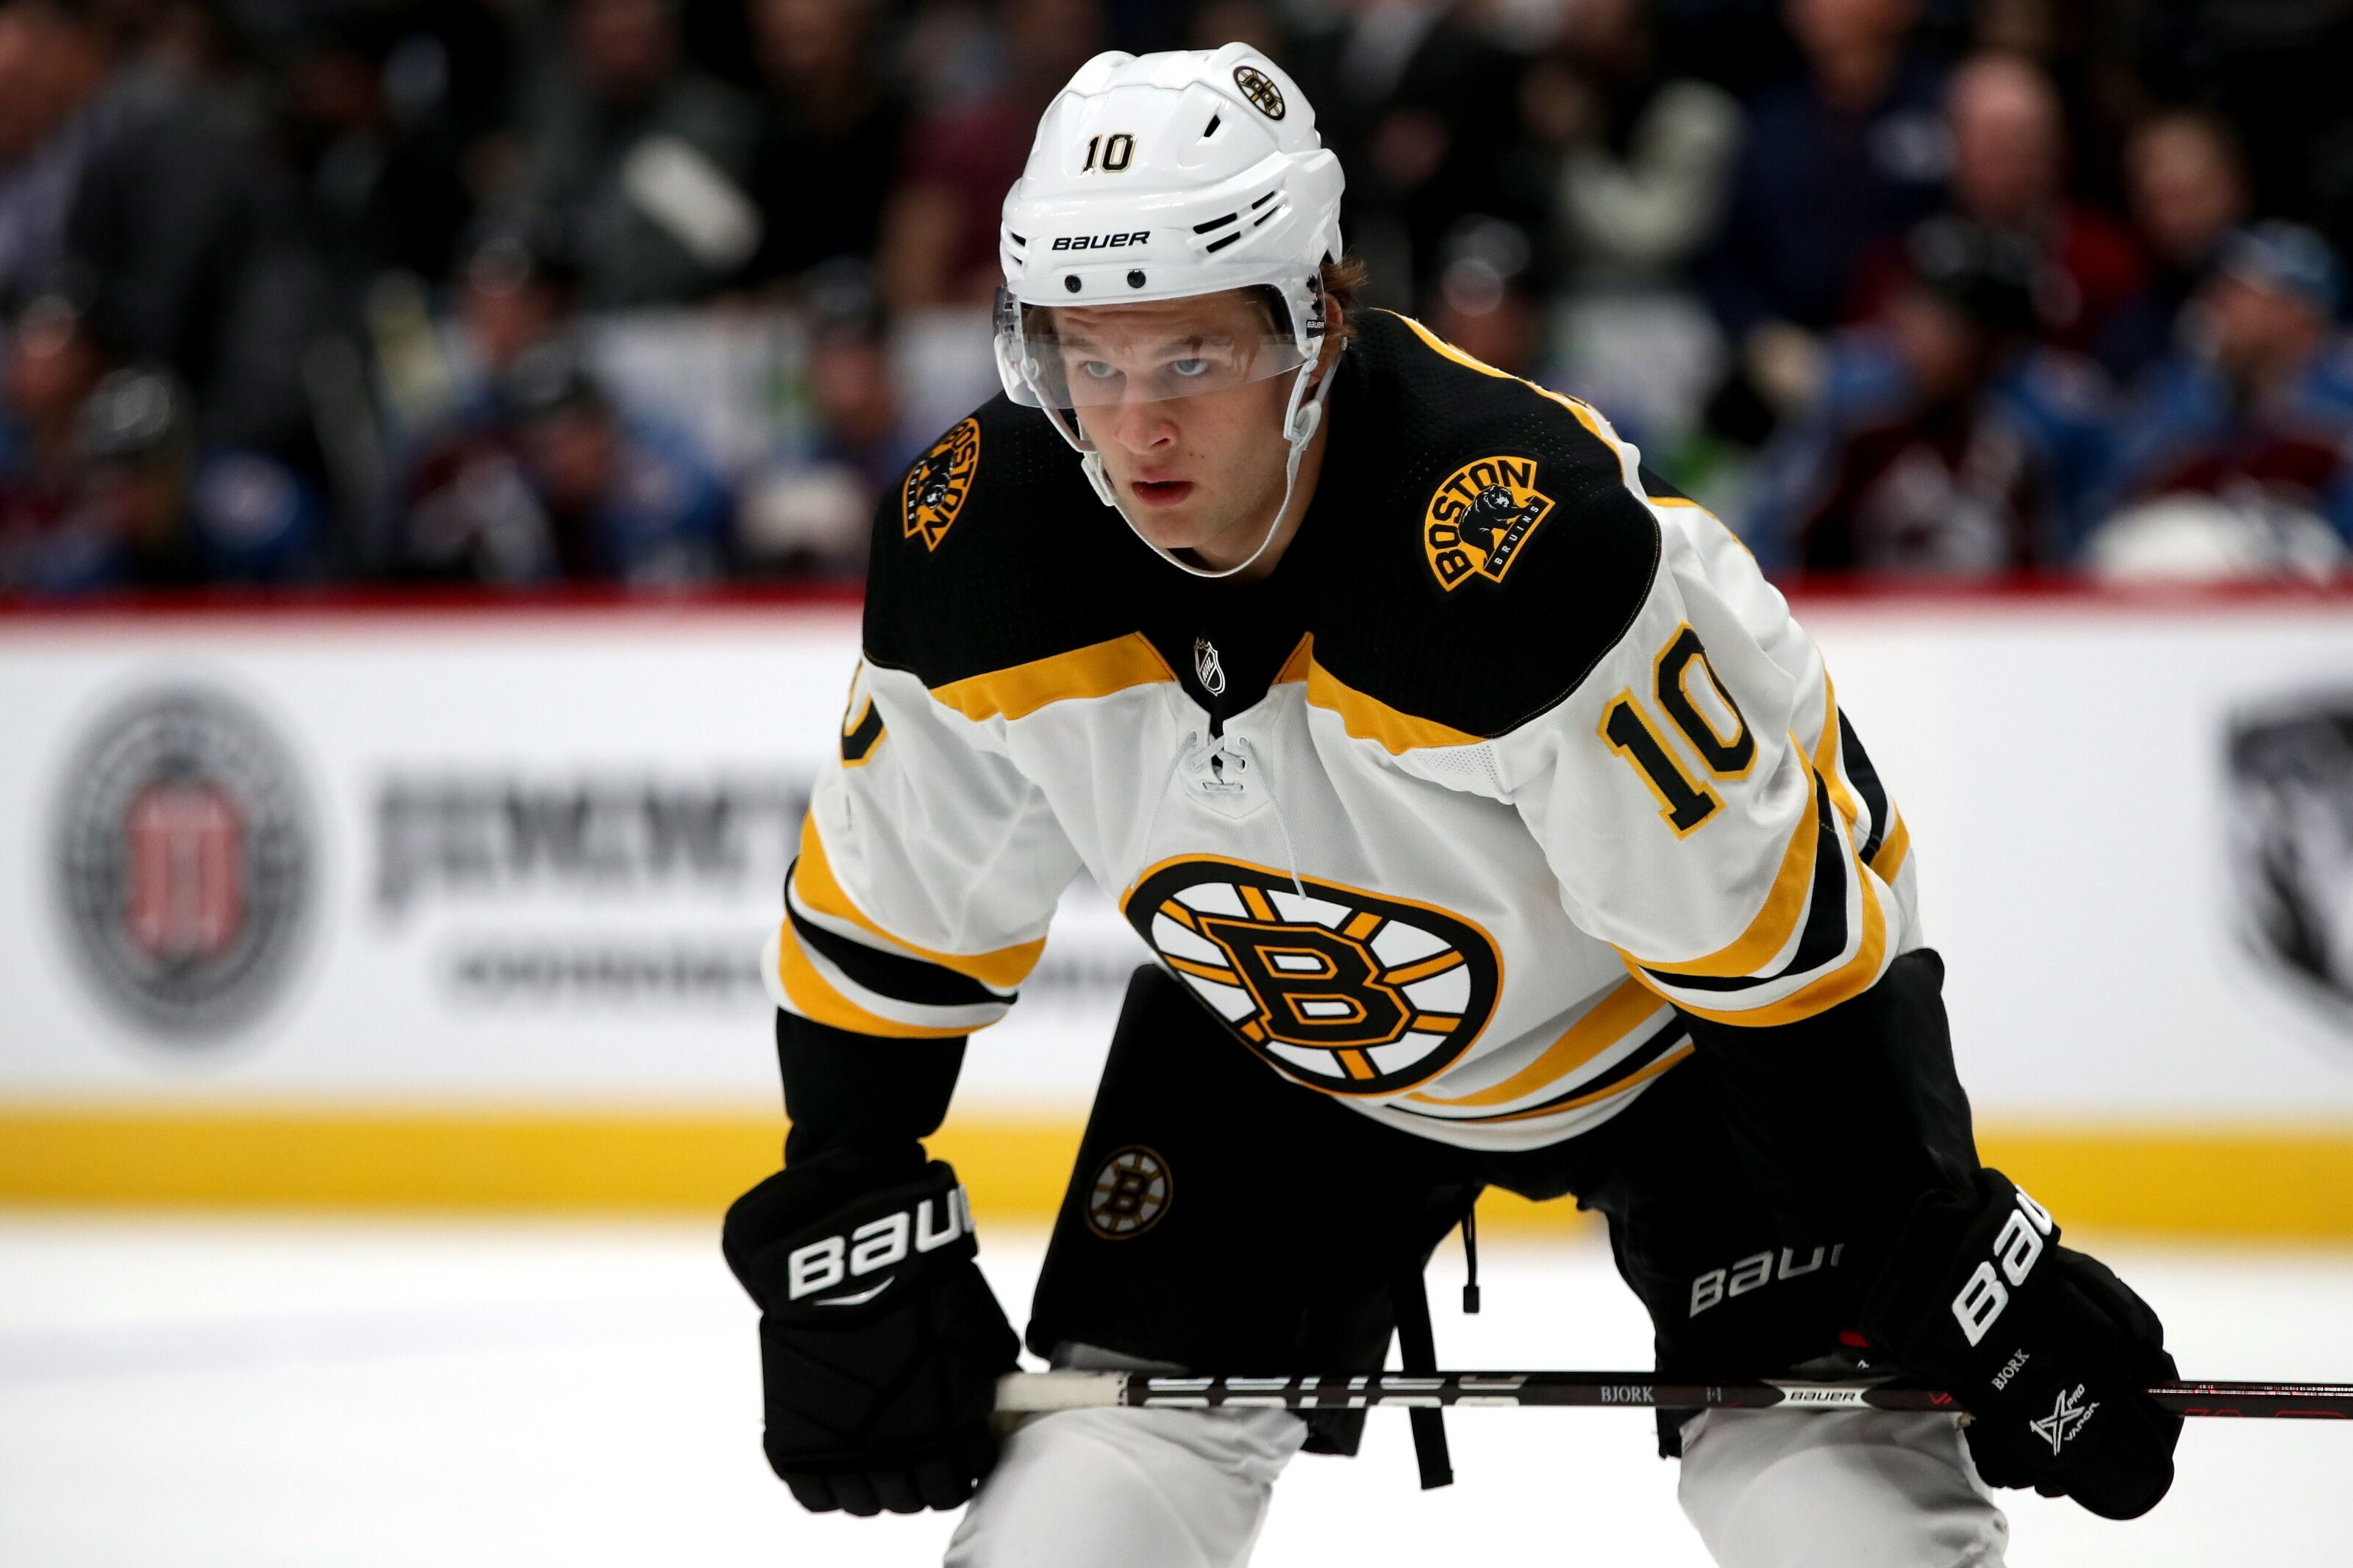 Boston Bruins: Boston Bruins: 3 Young Players To Watch This Season